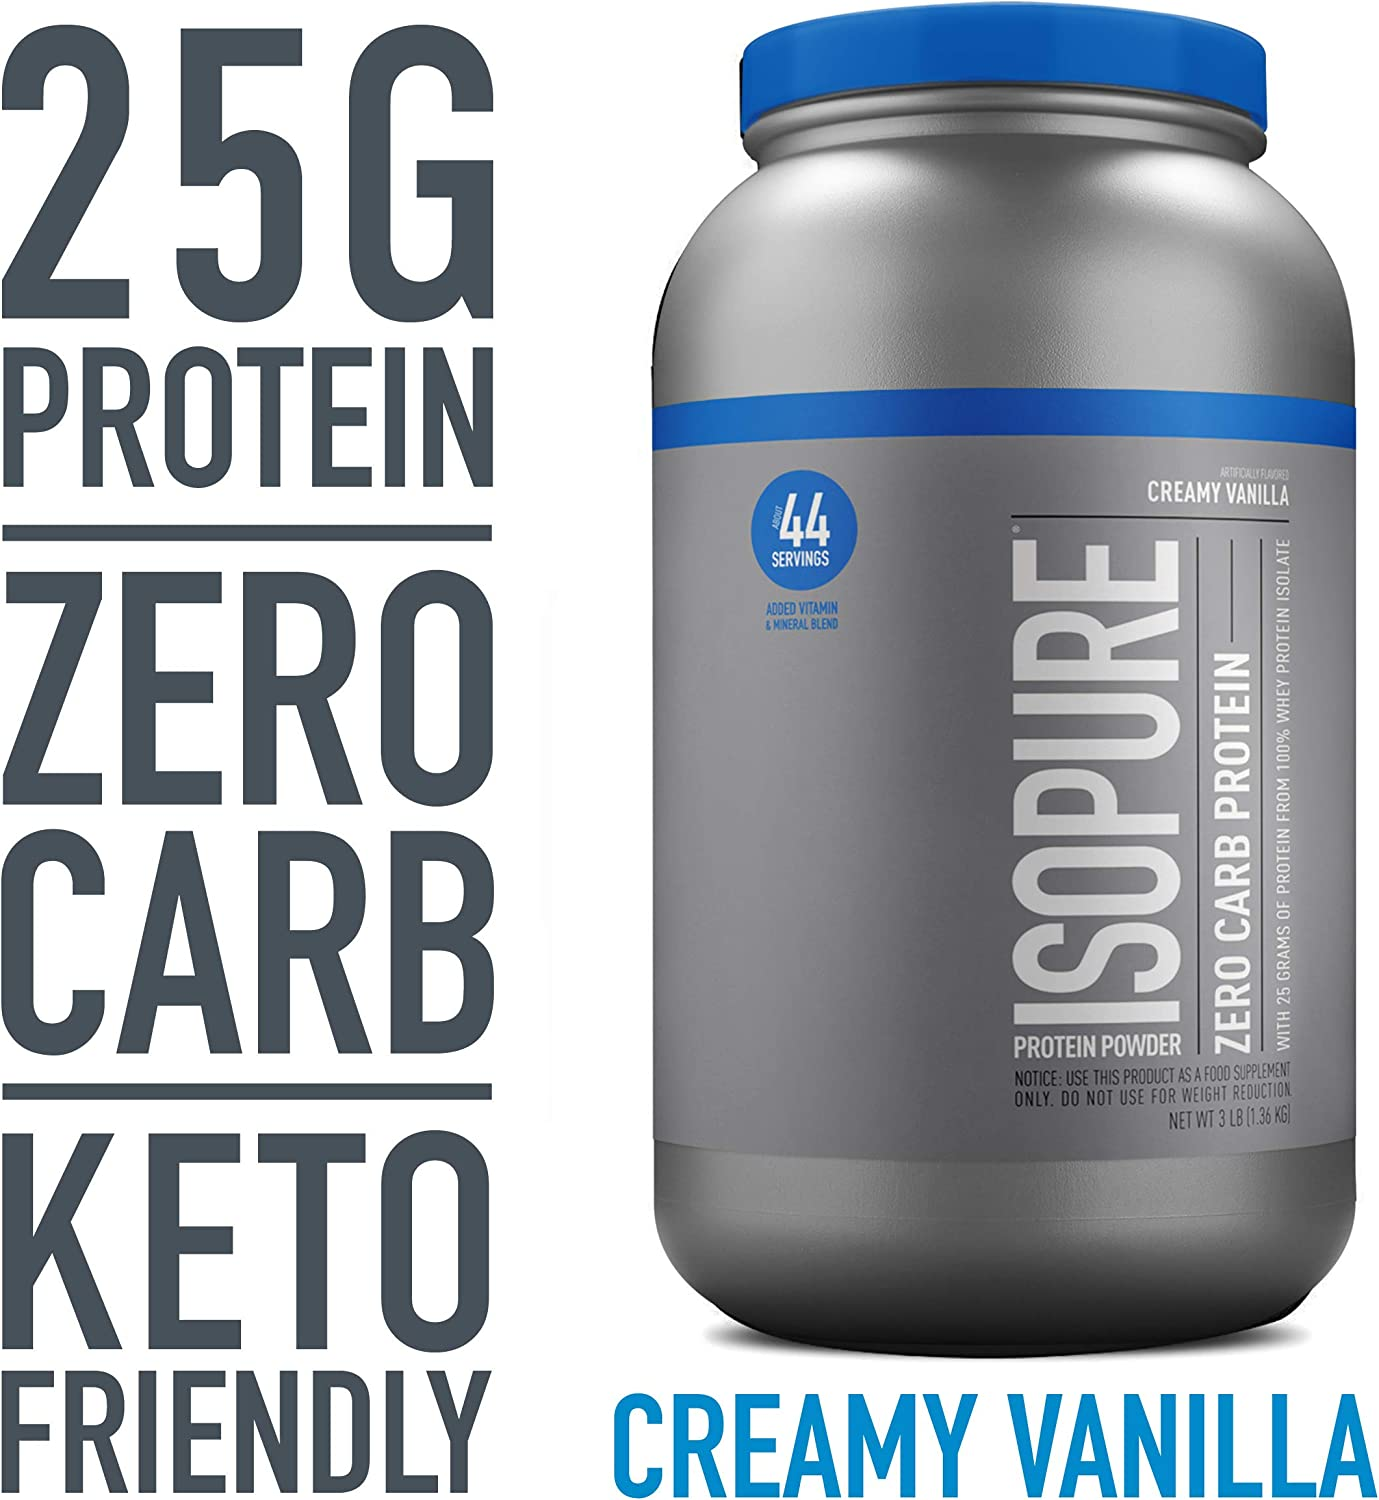 Isopure Zero Carb, Vitamin C and Zinc for Immune Support Keto Friendly Protein Powder, 100% Whey Protein Isolate, Flavor